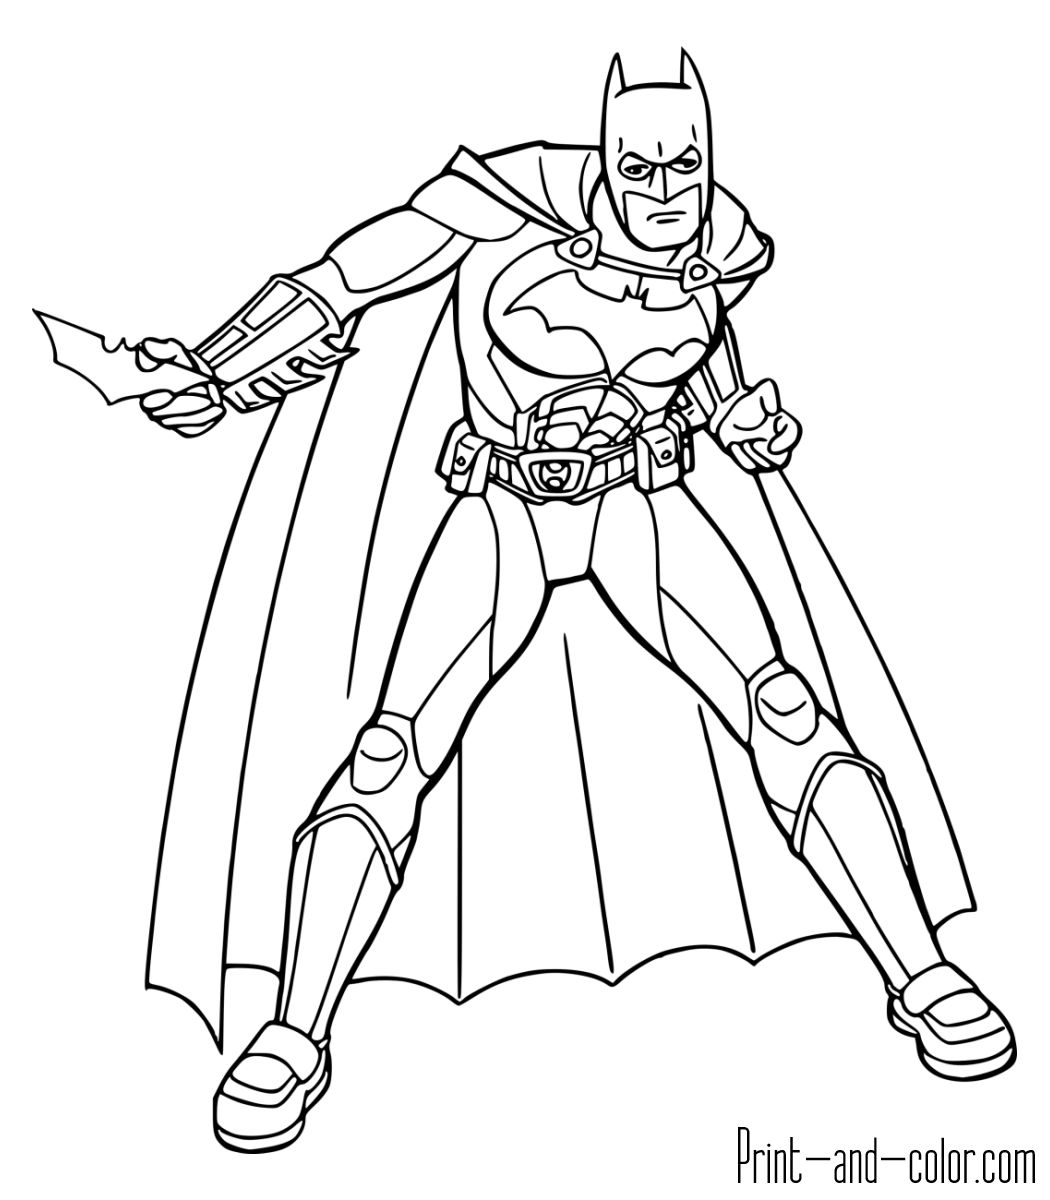 batman superman coloring pages pin on comic book coloring pages pages superman batman coloring